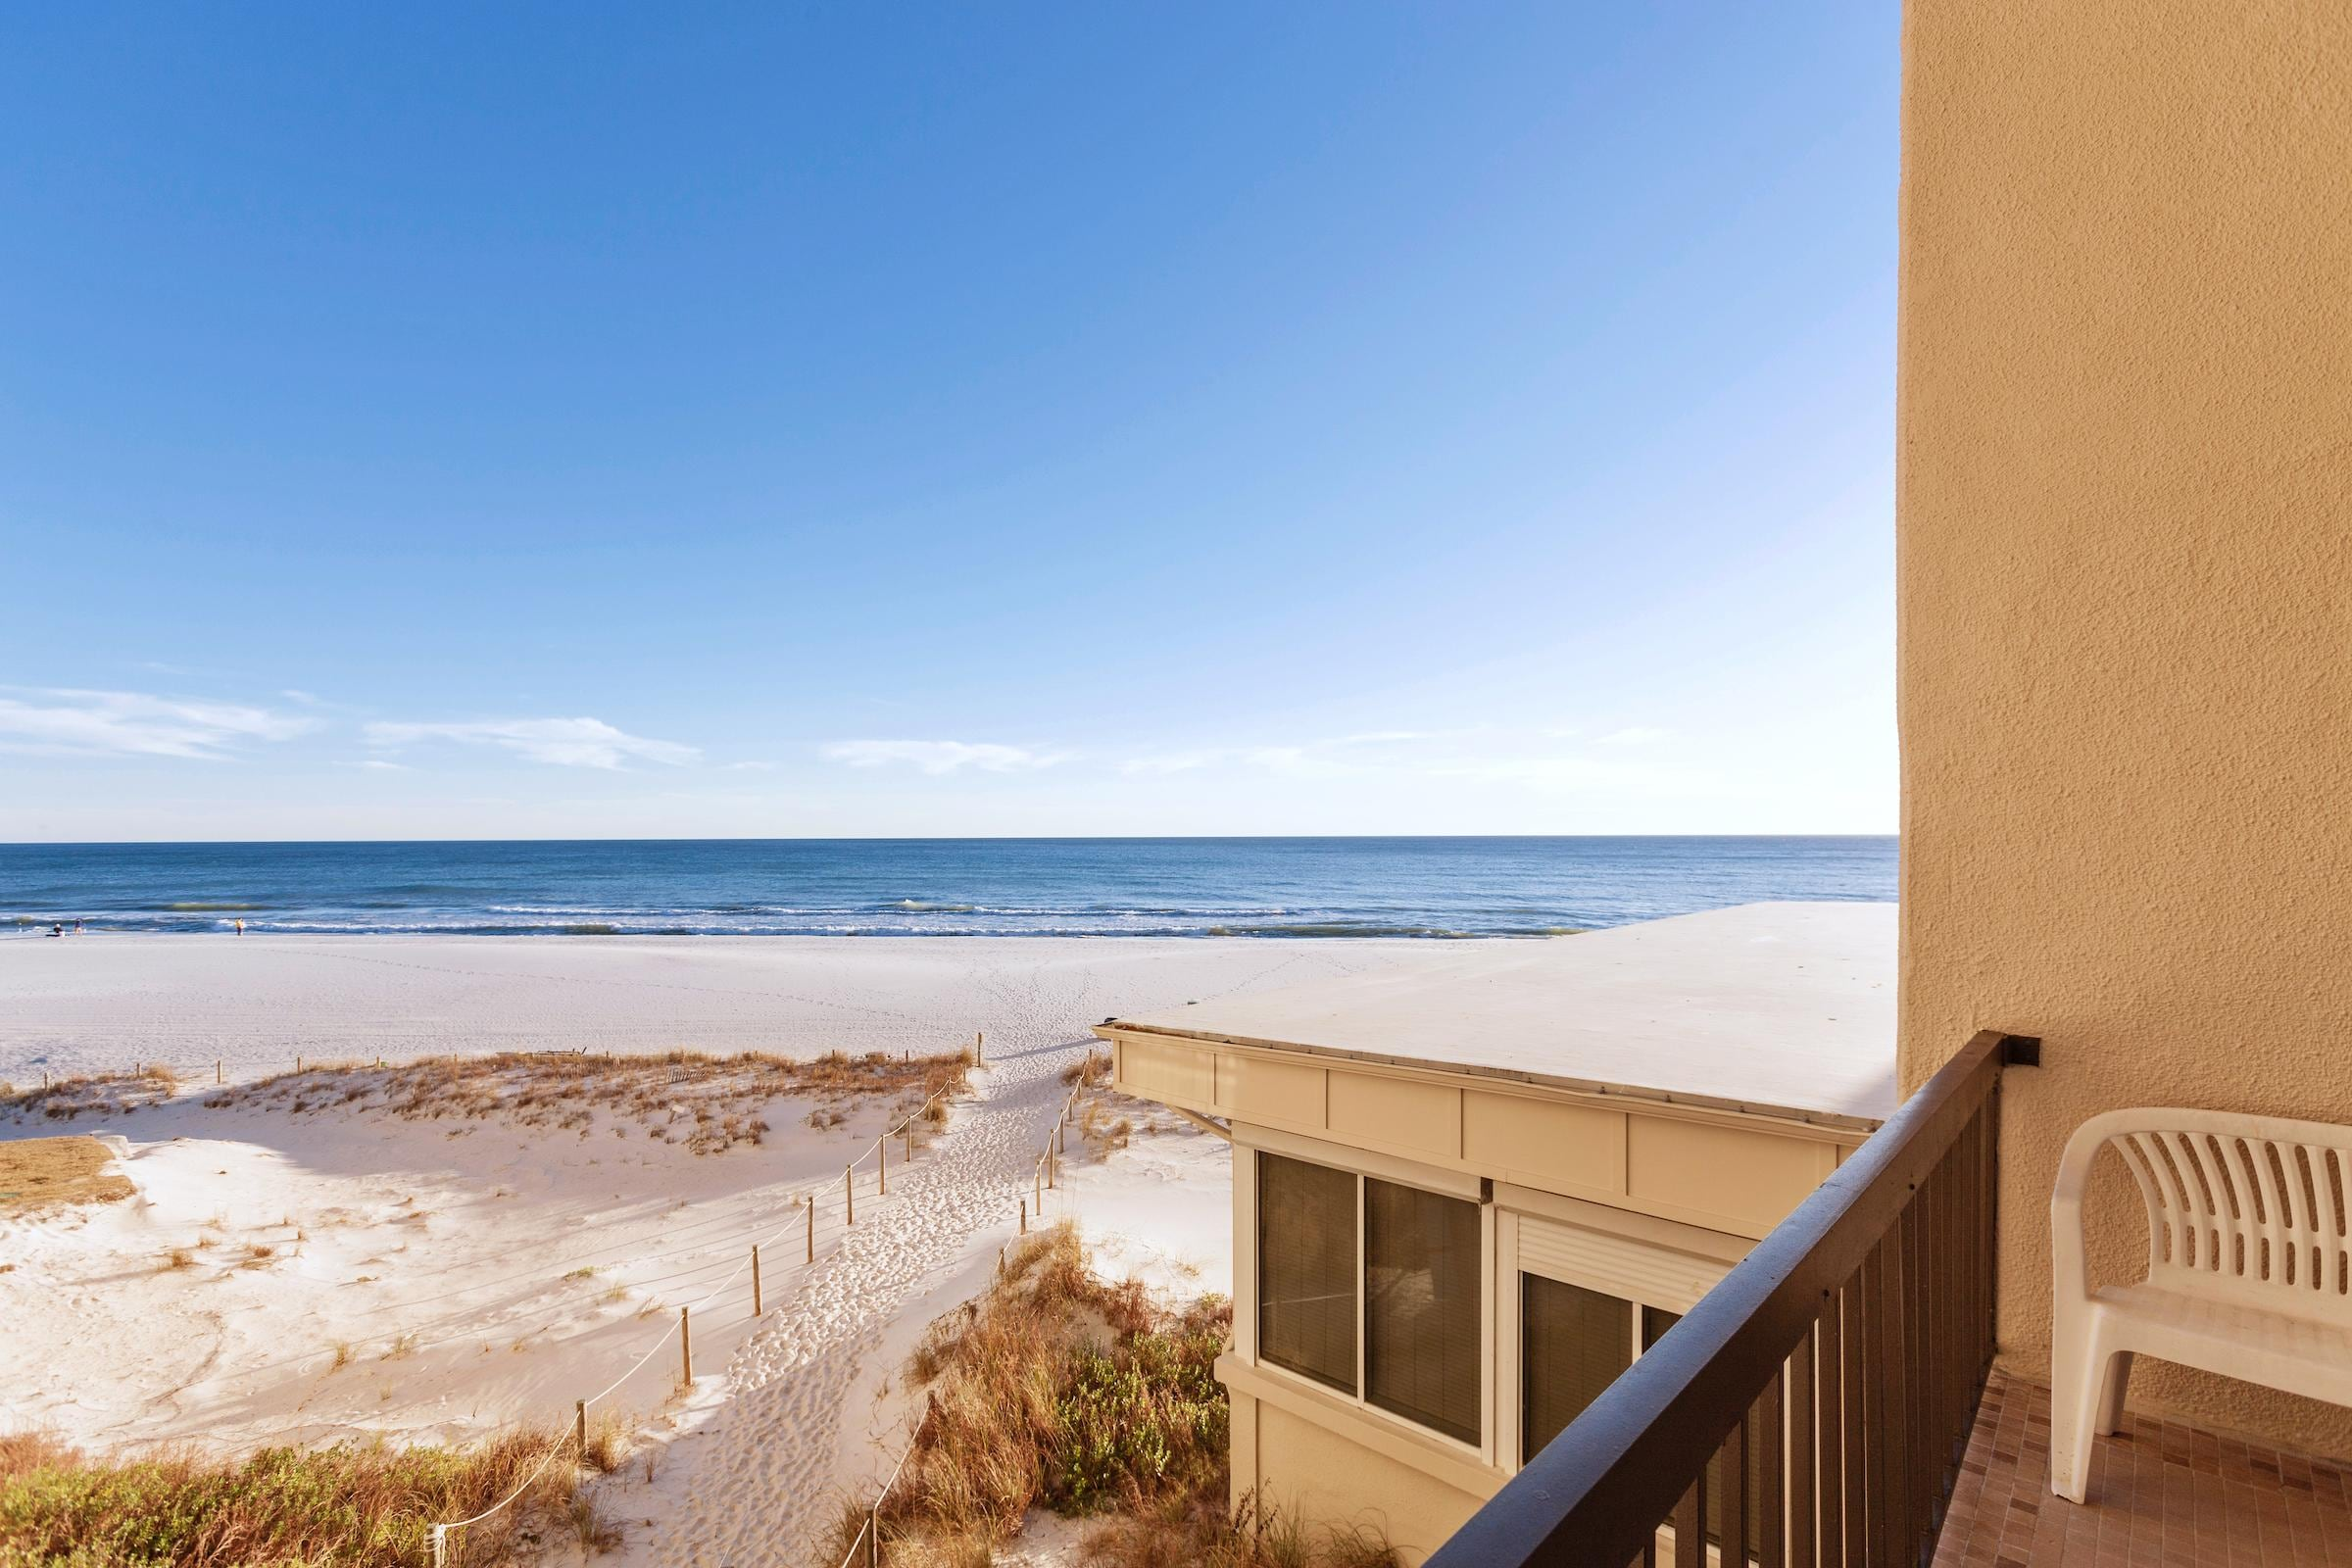 Enjoy stunning beach views from your balcony. This property is maintained and managed by TurnKey Vacation Rentals.